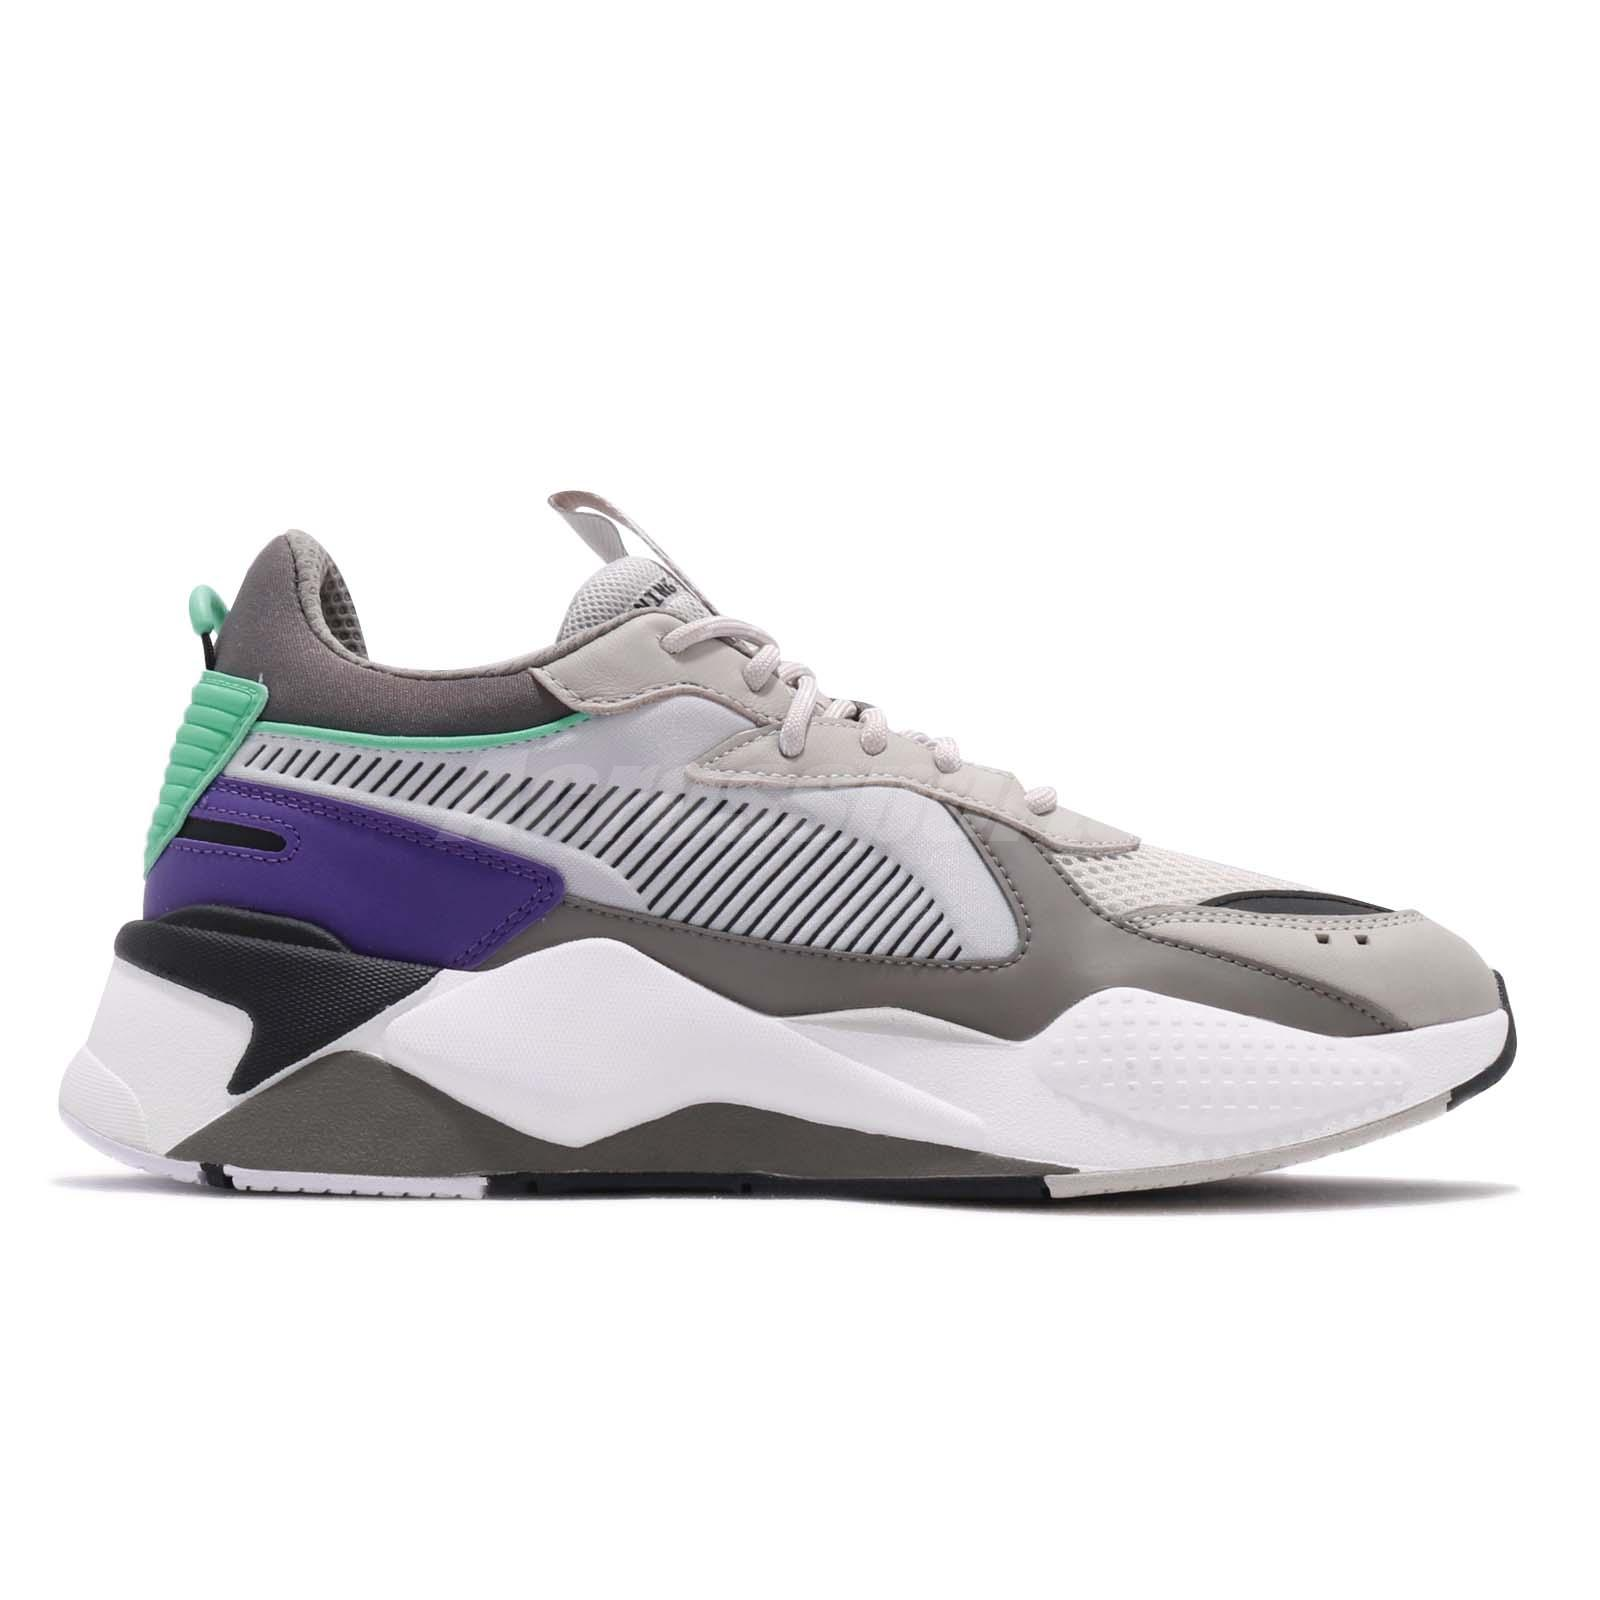 Details about Puma RS-X Tracks Running System Grey Purple White Green Men  Shoes 369332-01